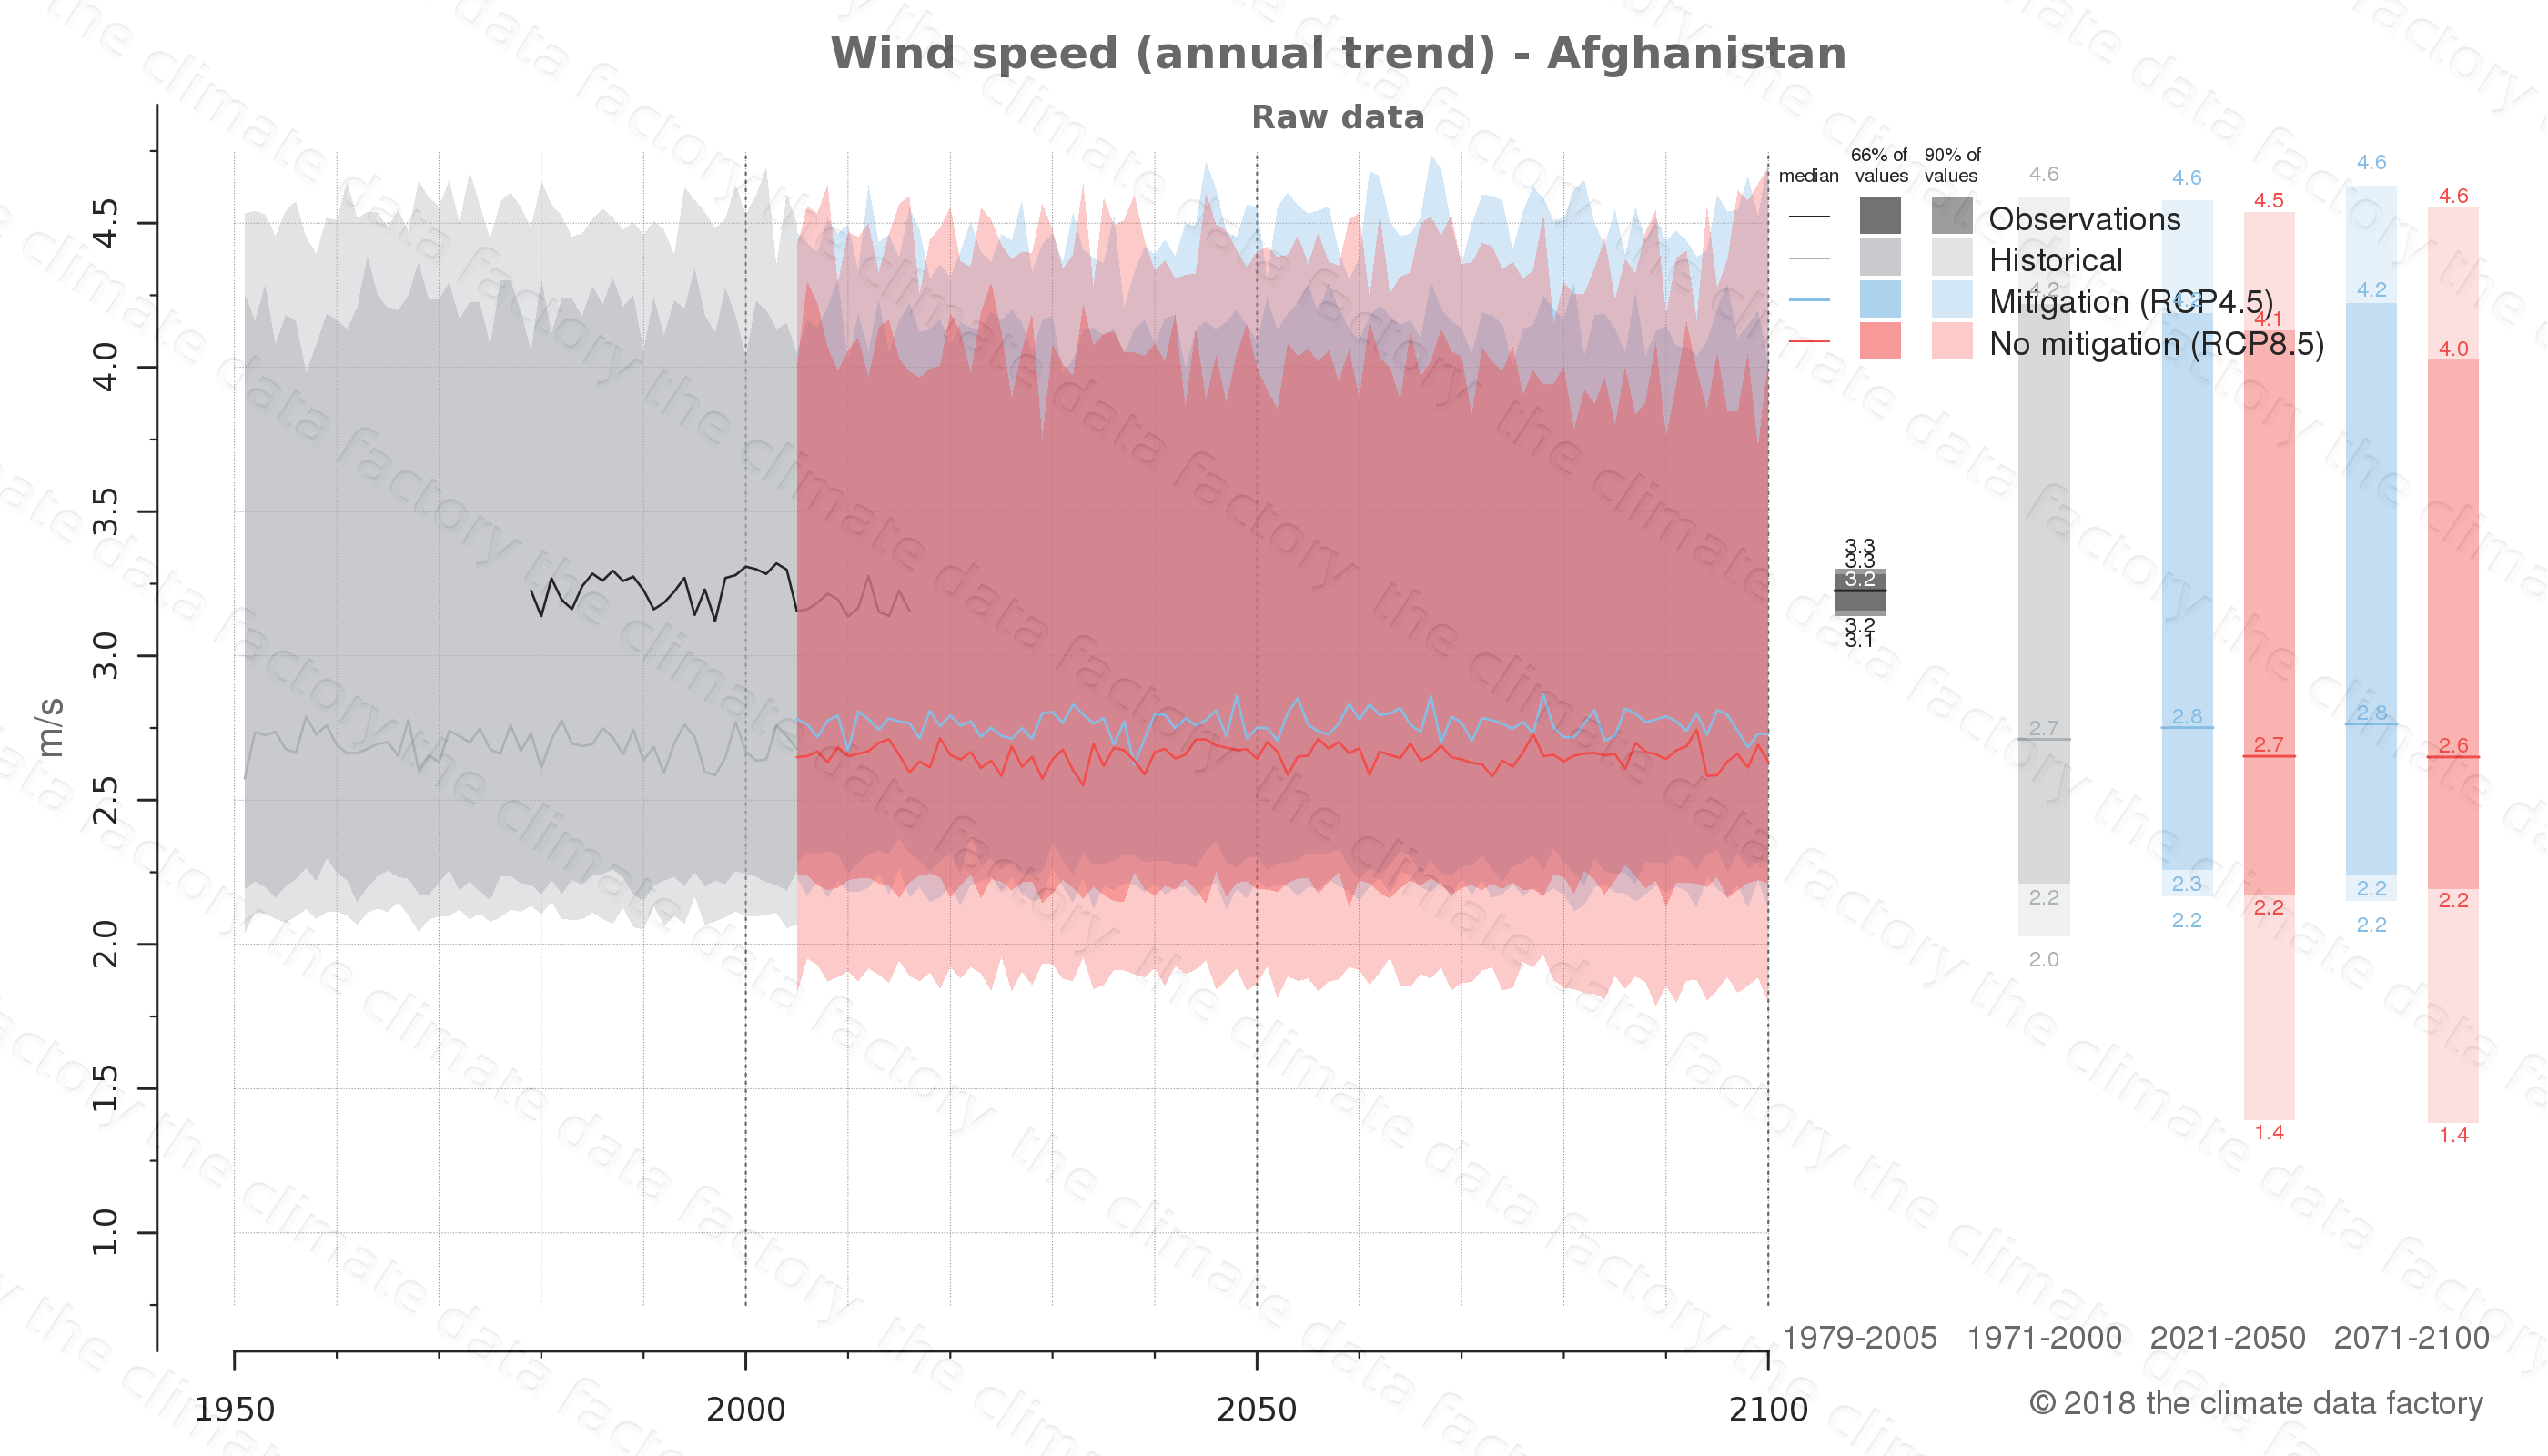 climate change data policy adaptation climate graph country data wind speed afghanistan west-asia